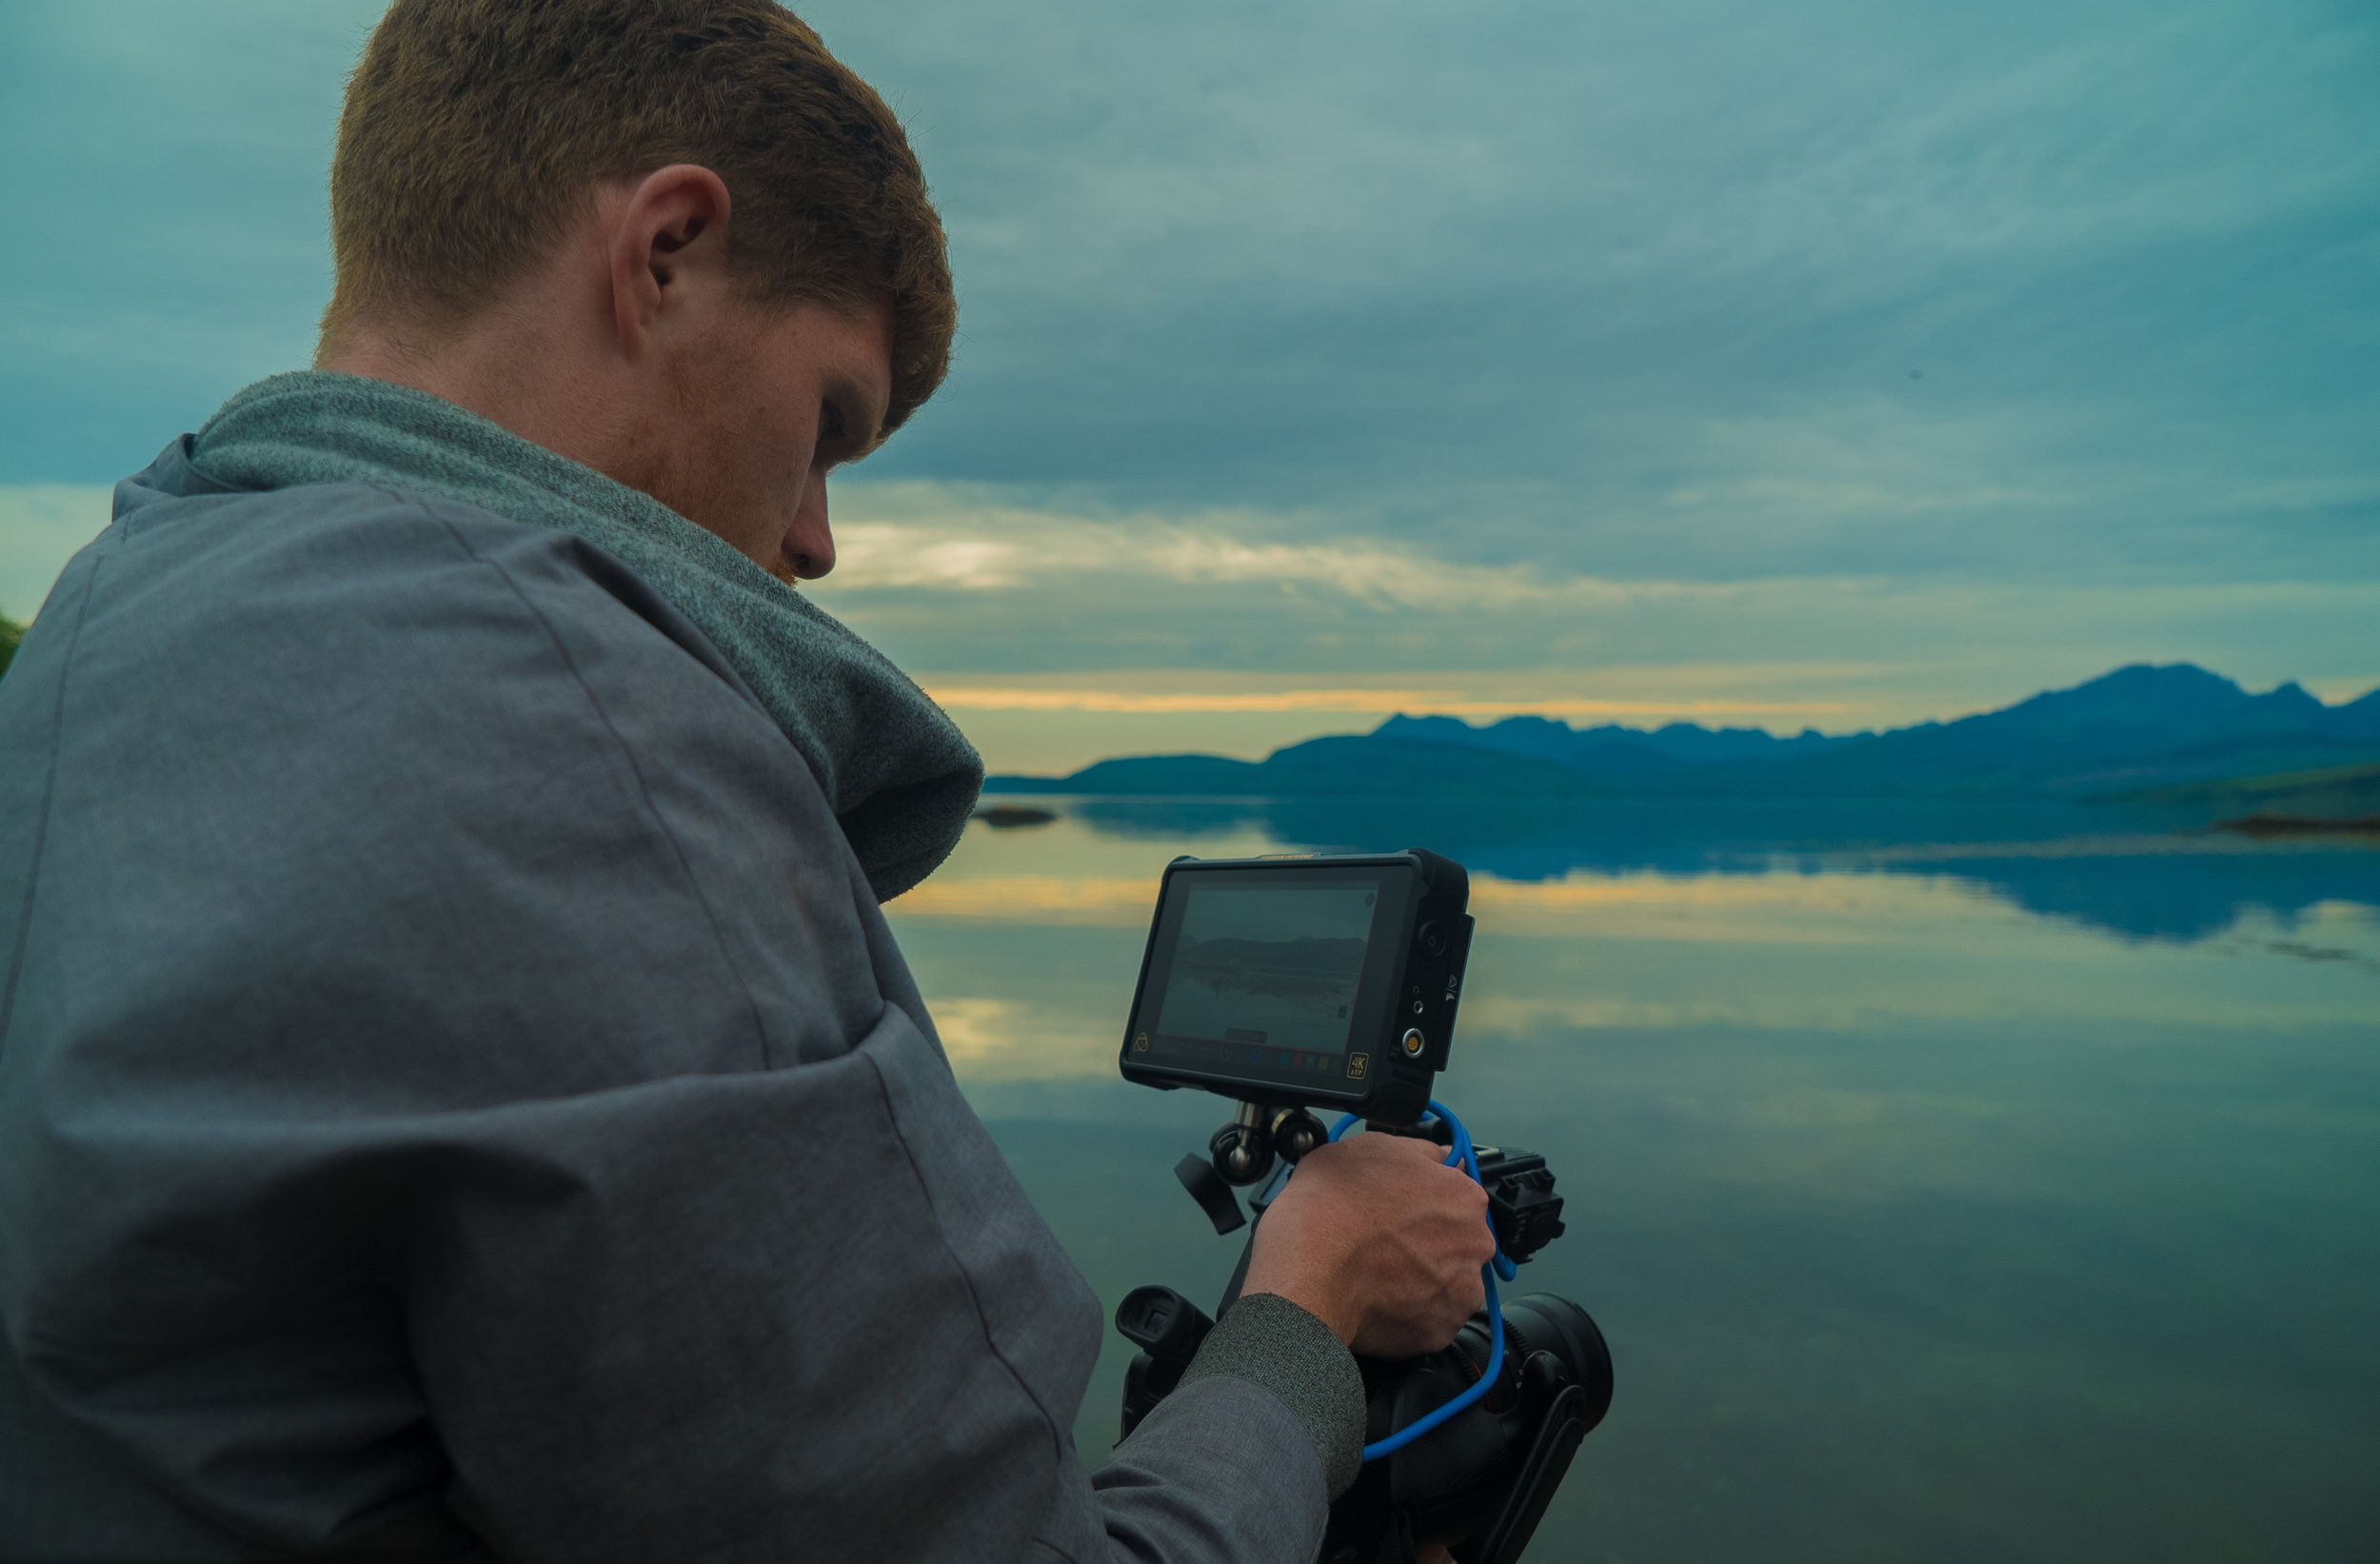 Sean with the FS5 and Atomos